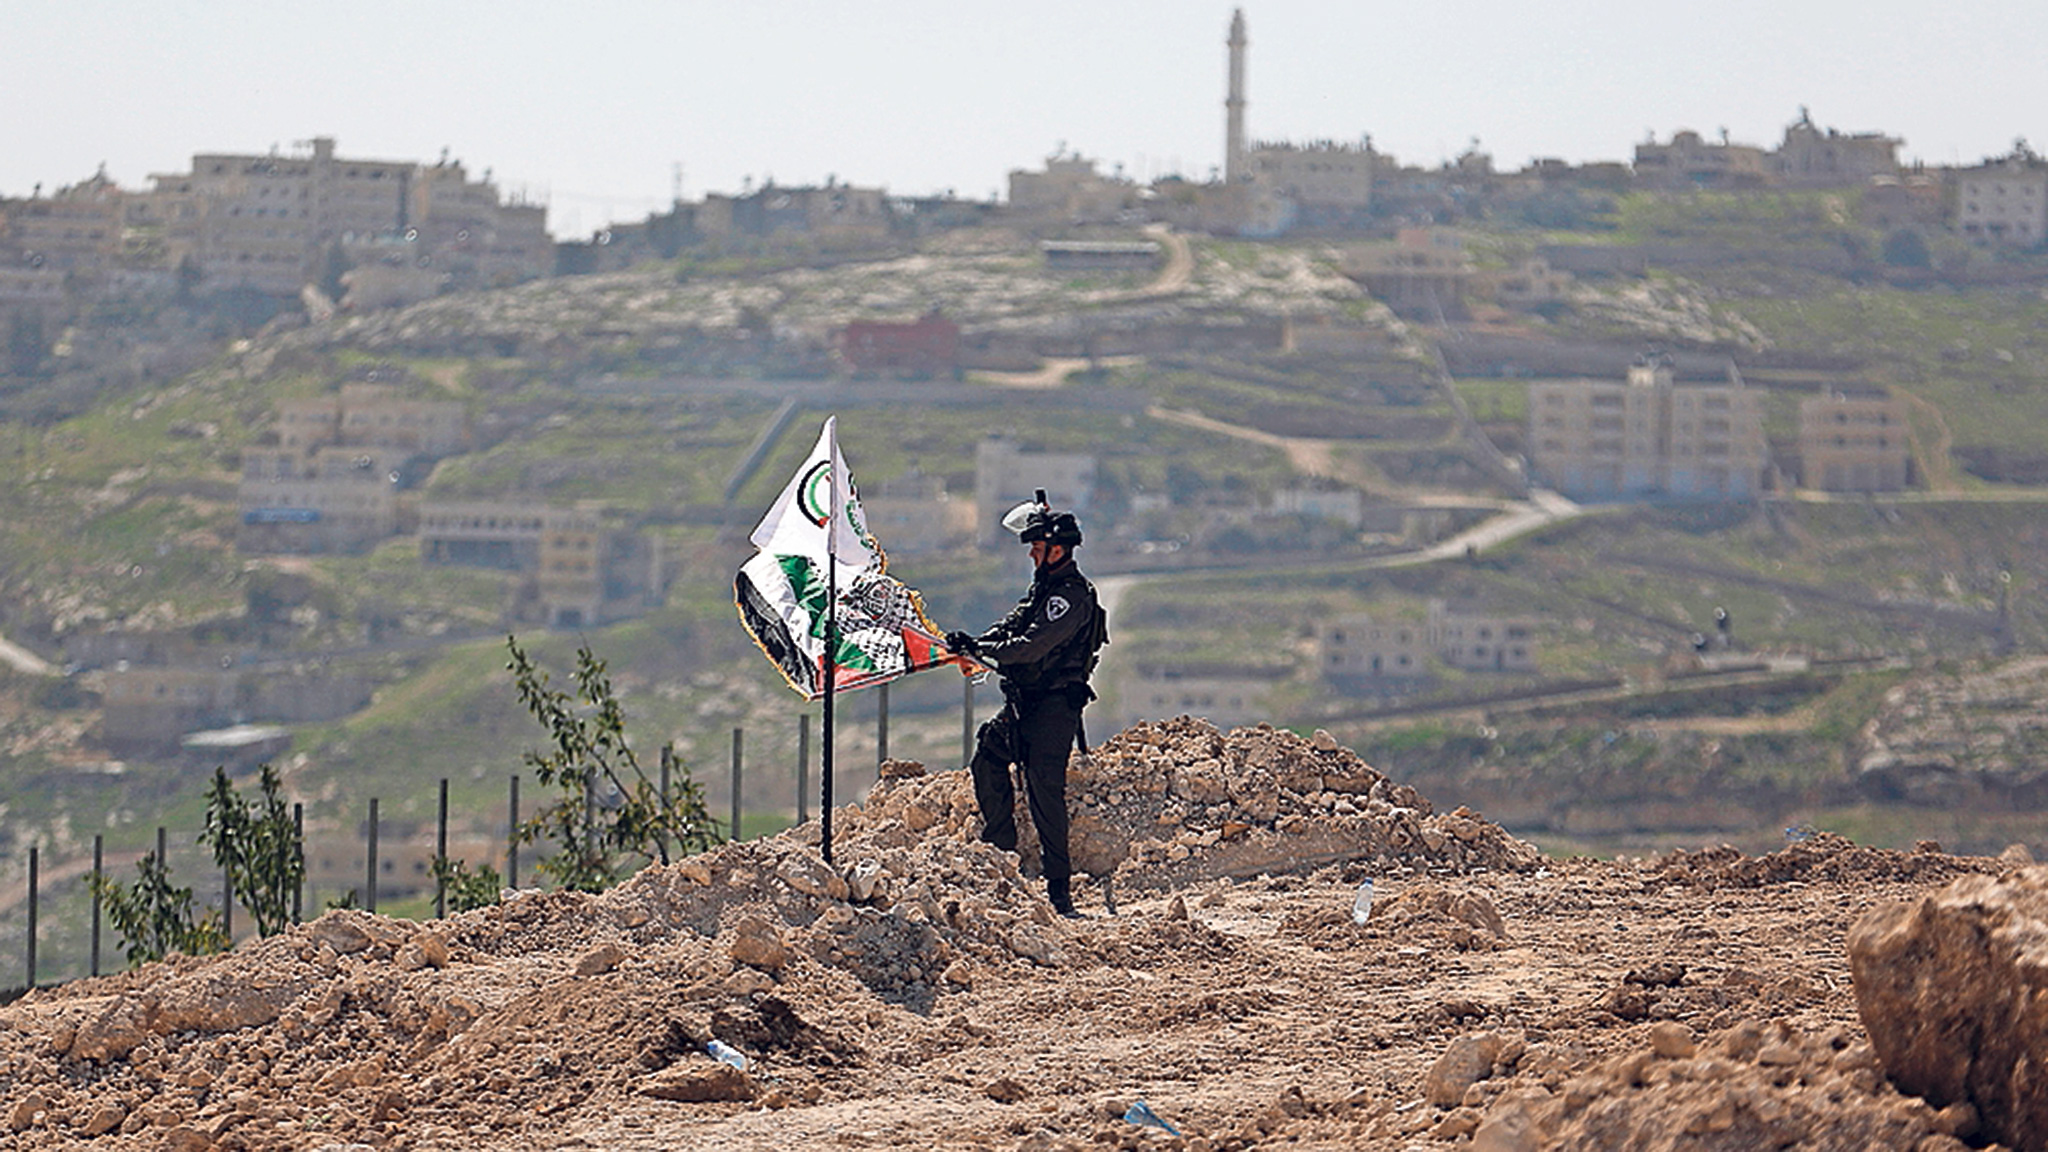 An Israeli border policeman removes a Palestinian flag and a Fatah flag during a protest against what Palestinians say is land confiscations by Israel for Jewish settlements, near the West Bank town of Abu Dis near Jerusalem March 6, 2015